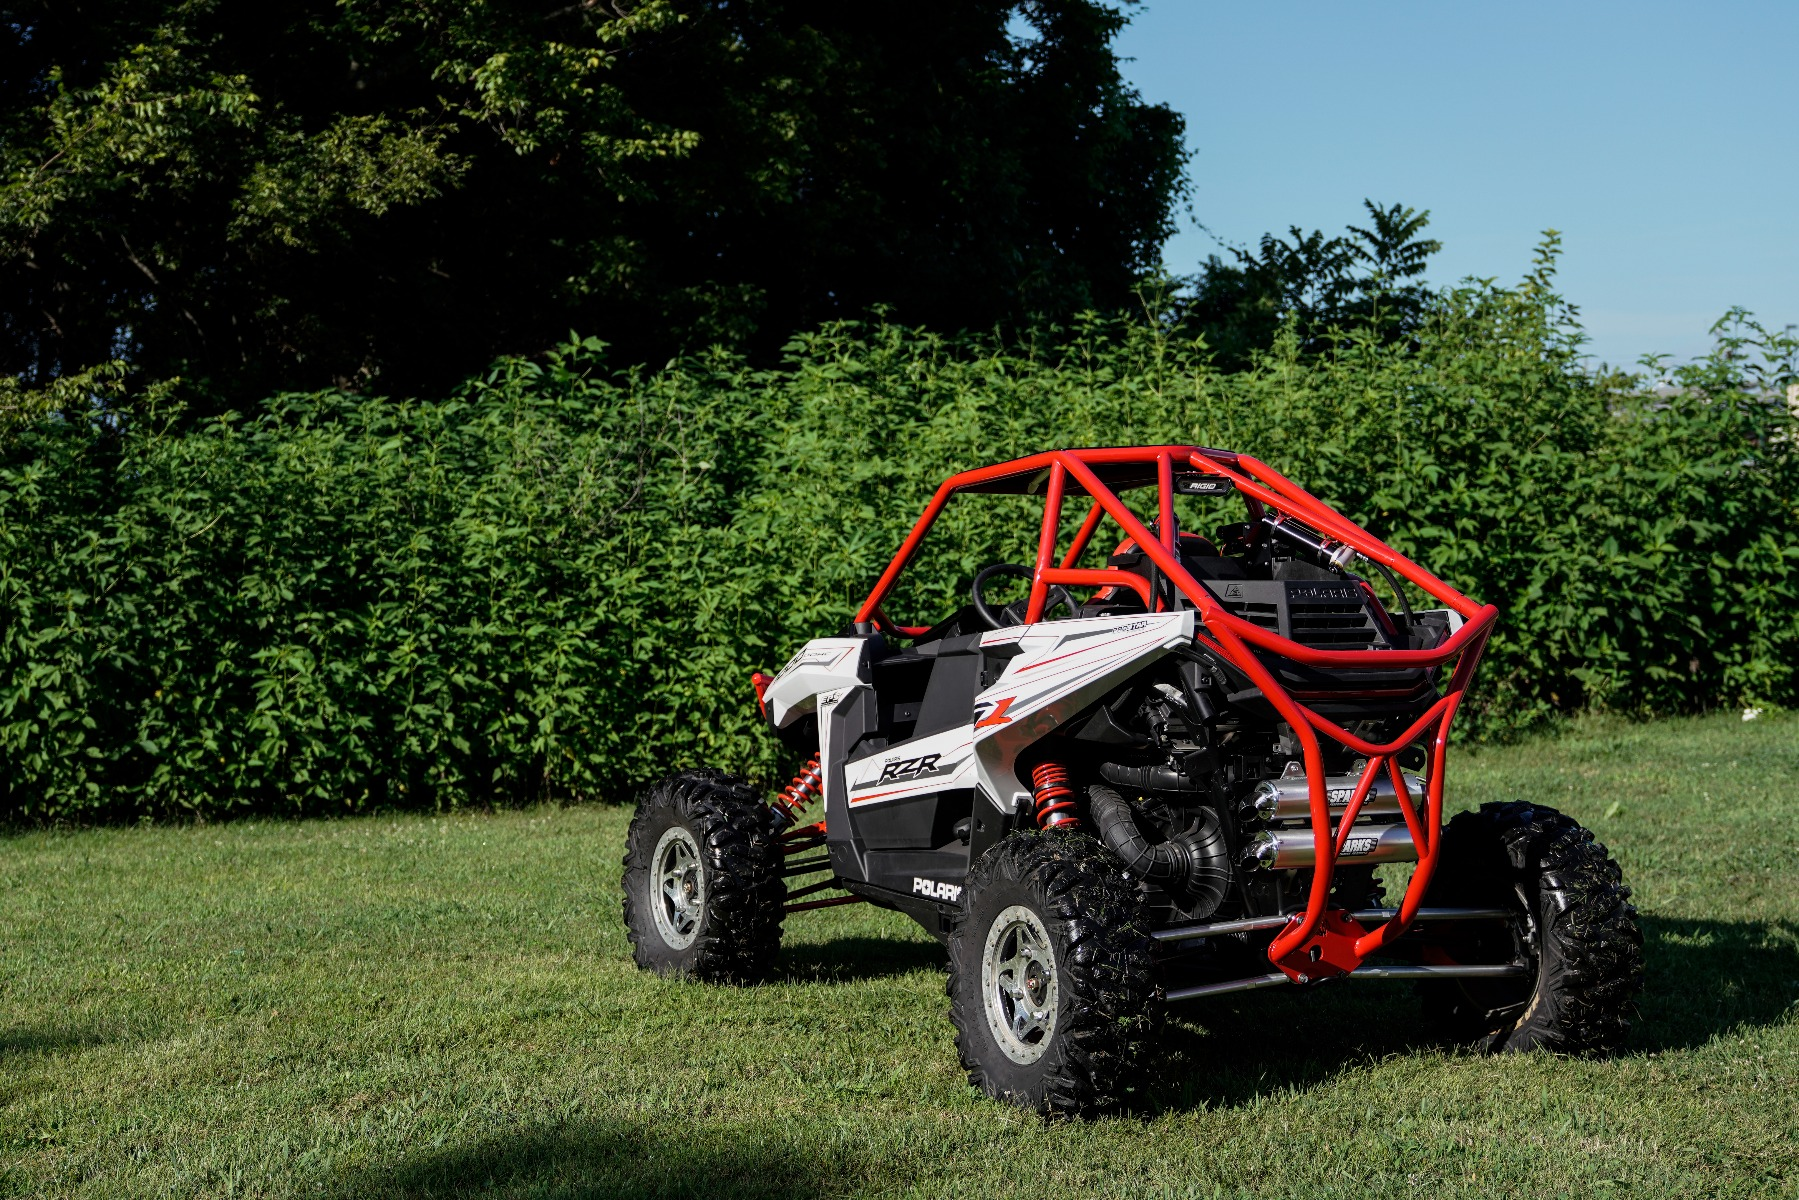 Polaris RZR RS1 Roll Cage in grass Image 12